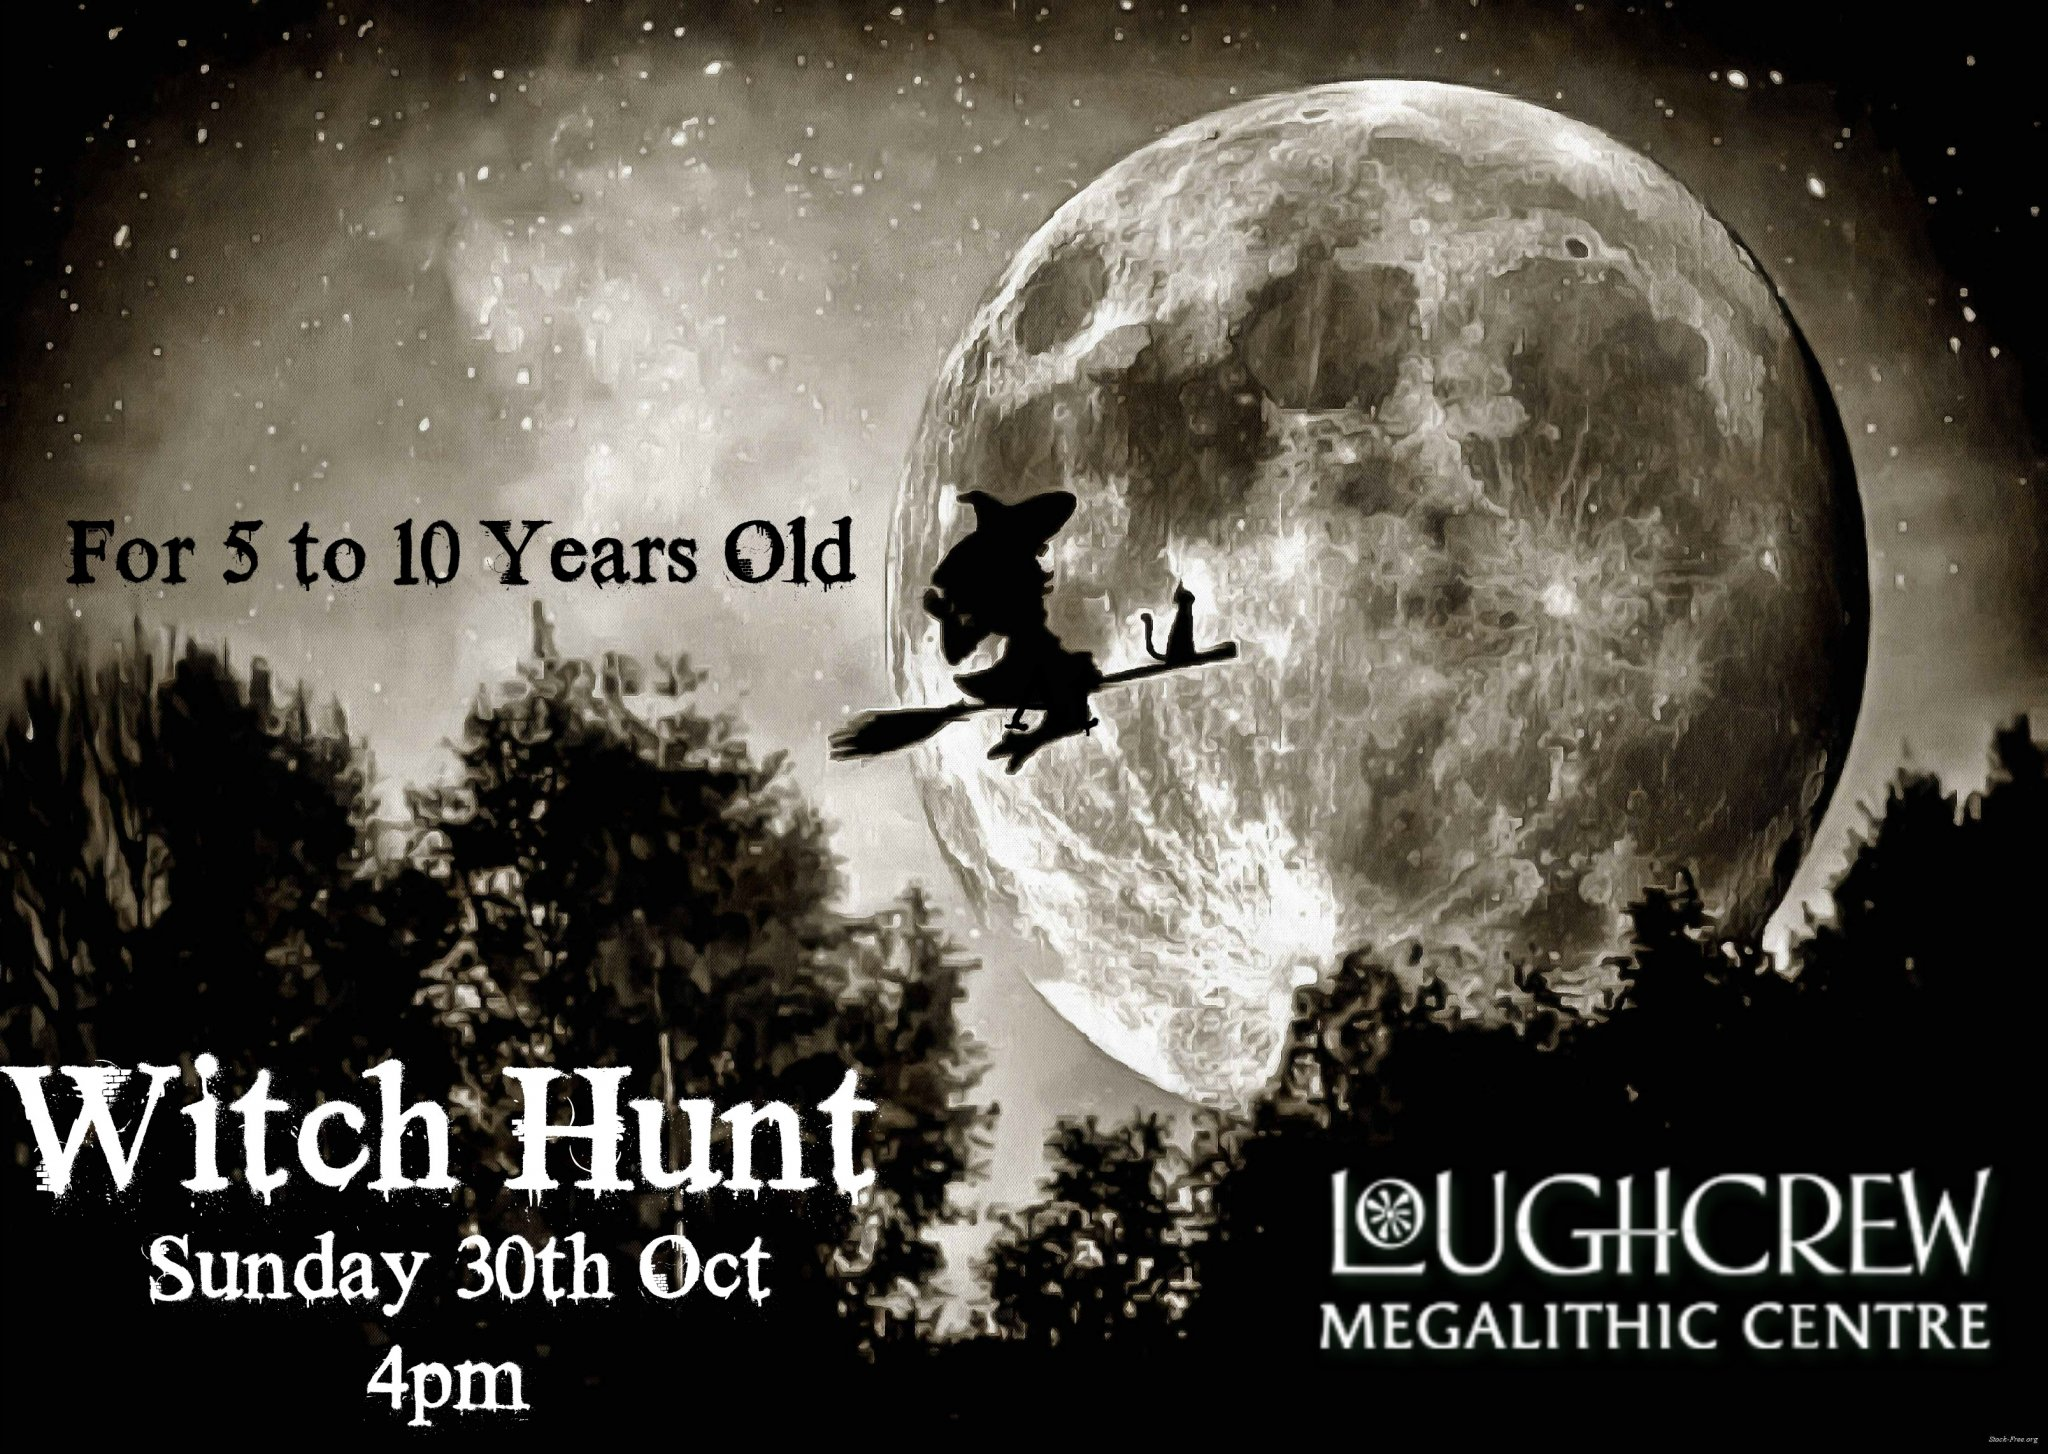 Witch Hunt at Loughcrew